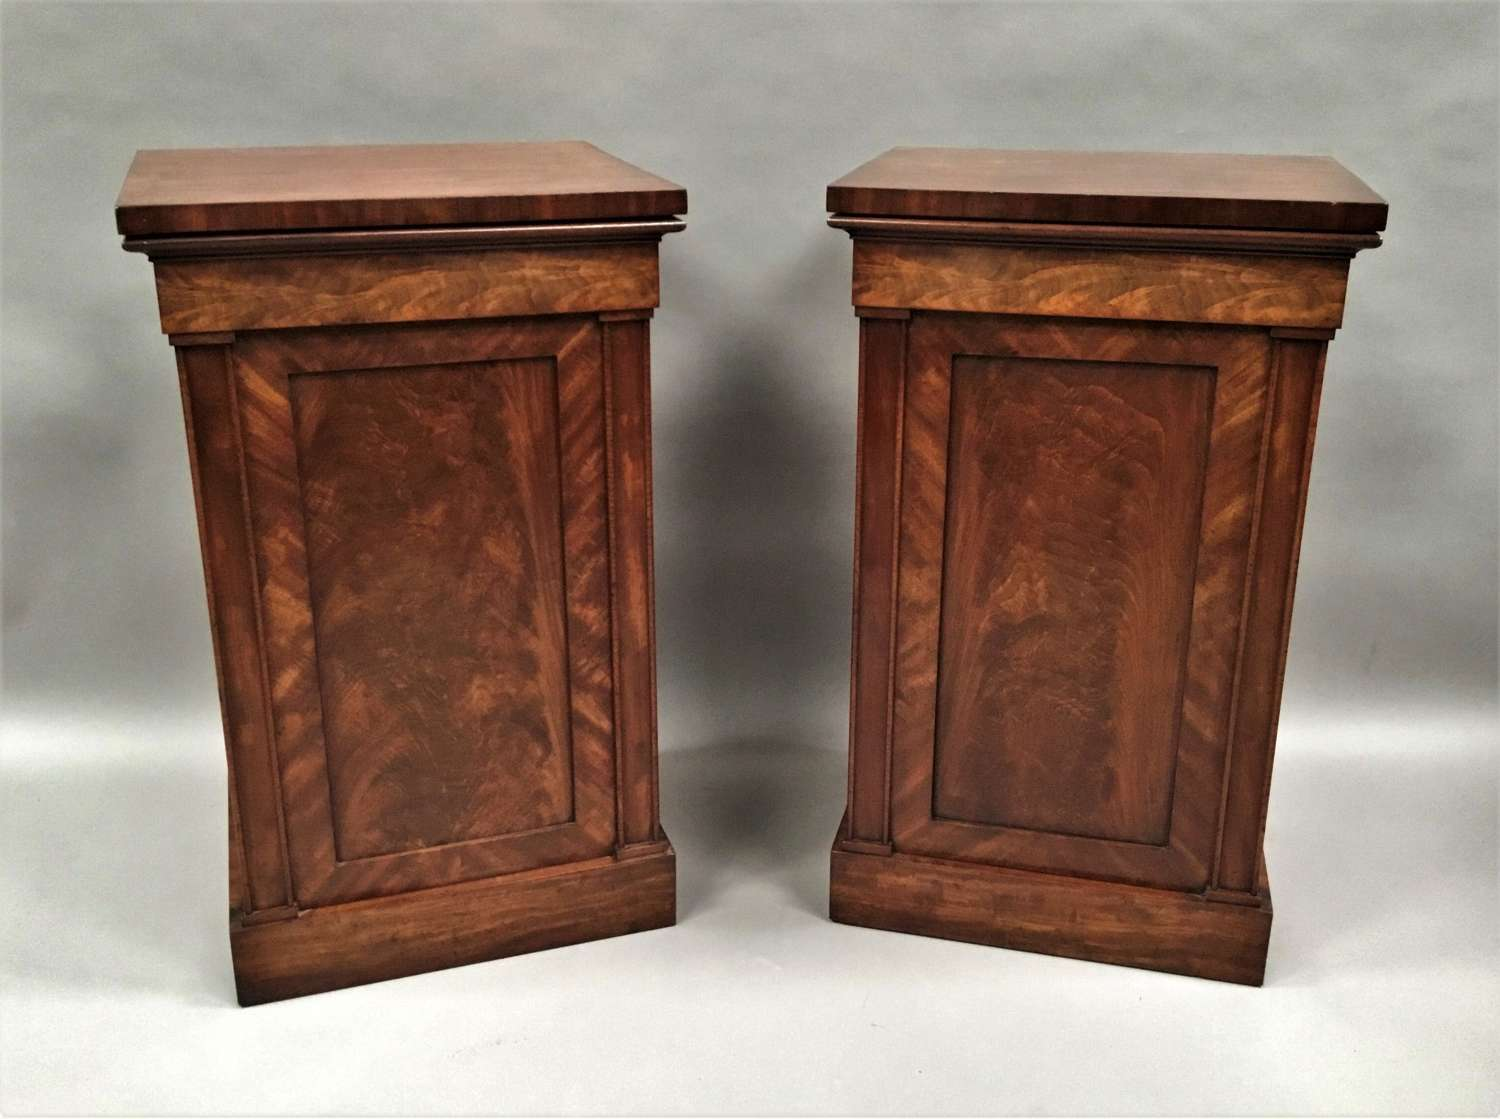 Late Regency pair of mahogany pedestal cabinets